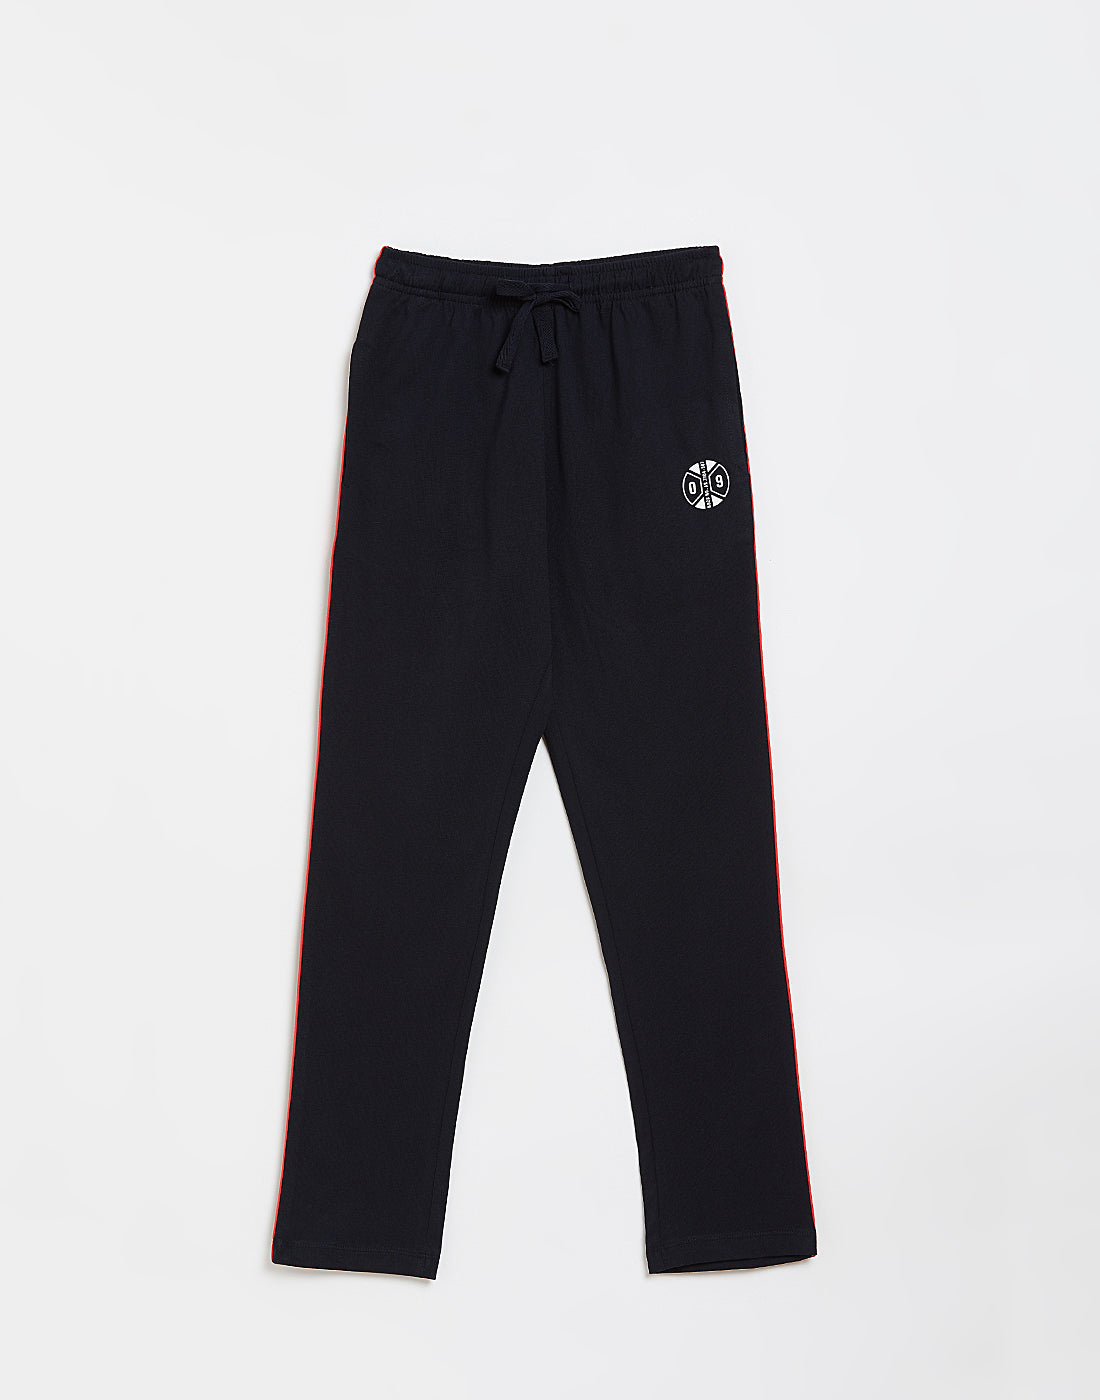 Octave Boys Navy Printed Trackpants